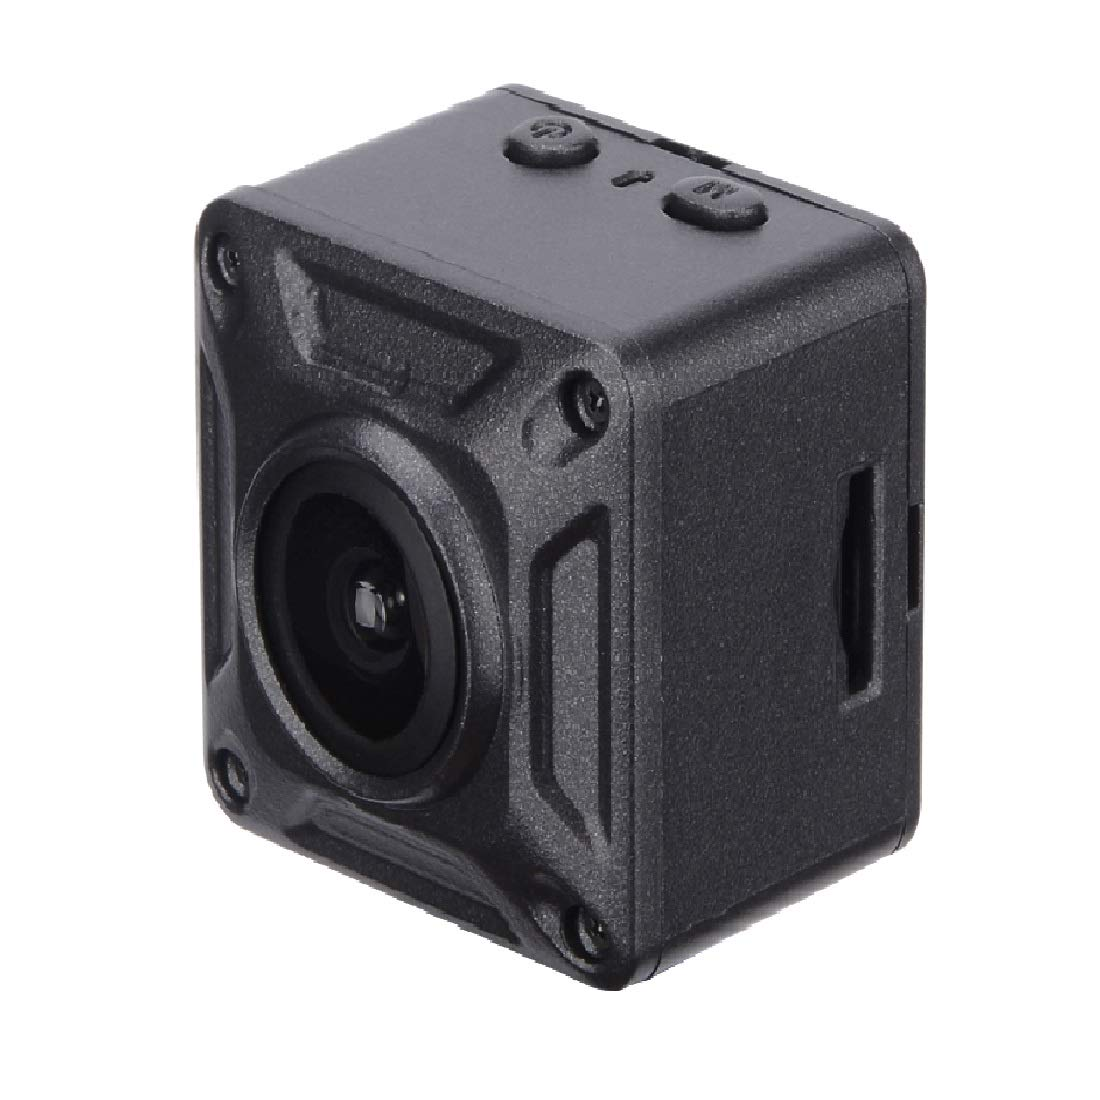 Hidden Spy Cameras, Mini Security Nanny Cam with Motion Activated, Tiny Cube Design, Nanny Camera with Motion Detection &Sound&Video Recording,HD Lens Sports Action Cam-Included 16GB Card as Gift